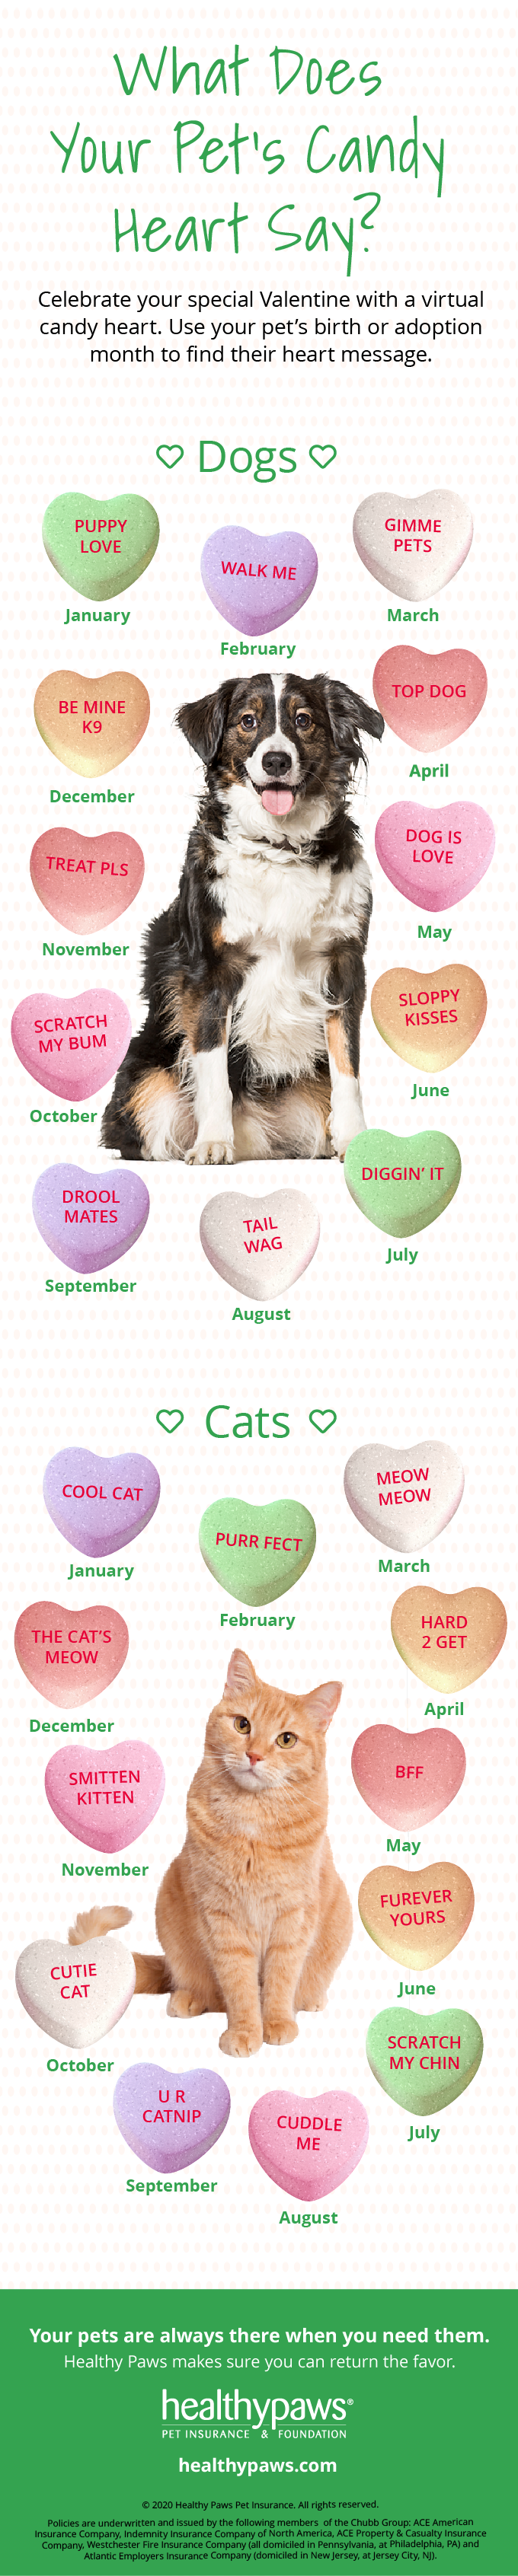 What Does Your Pet's Candy Heart Say?